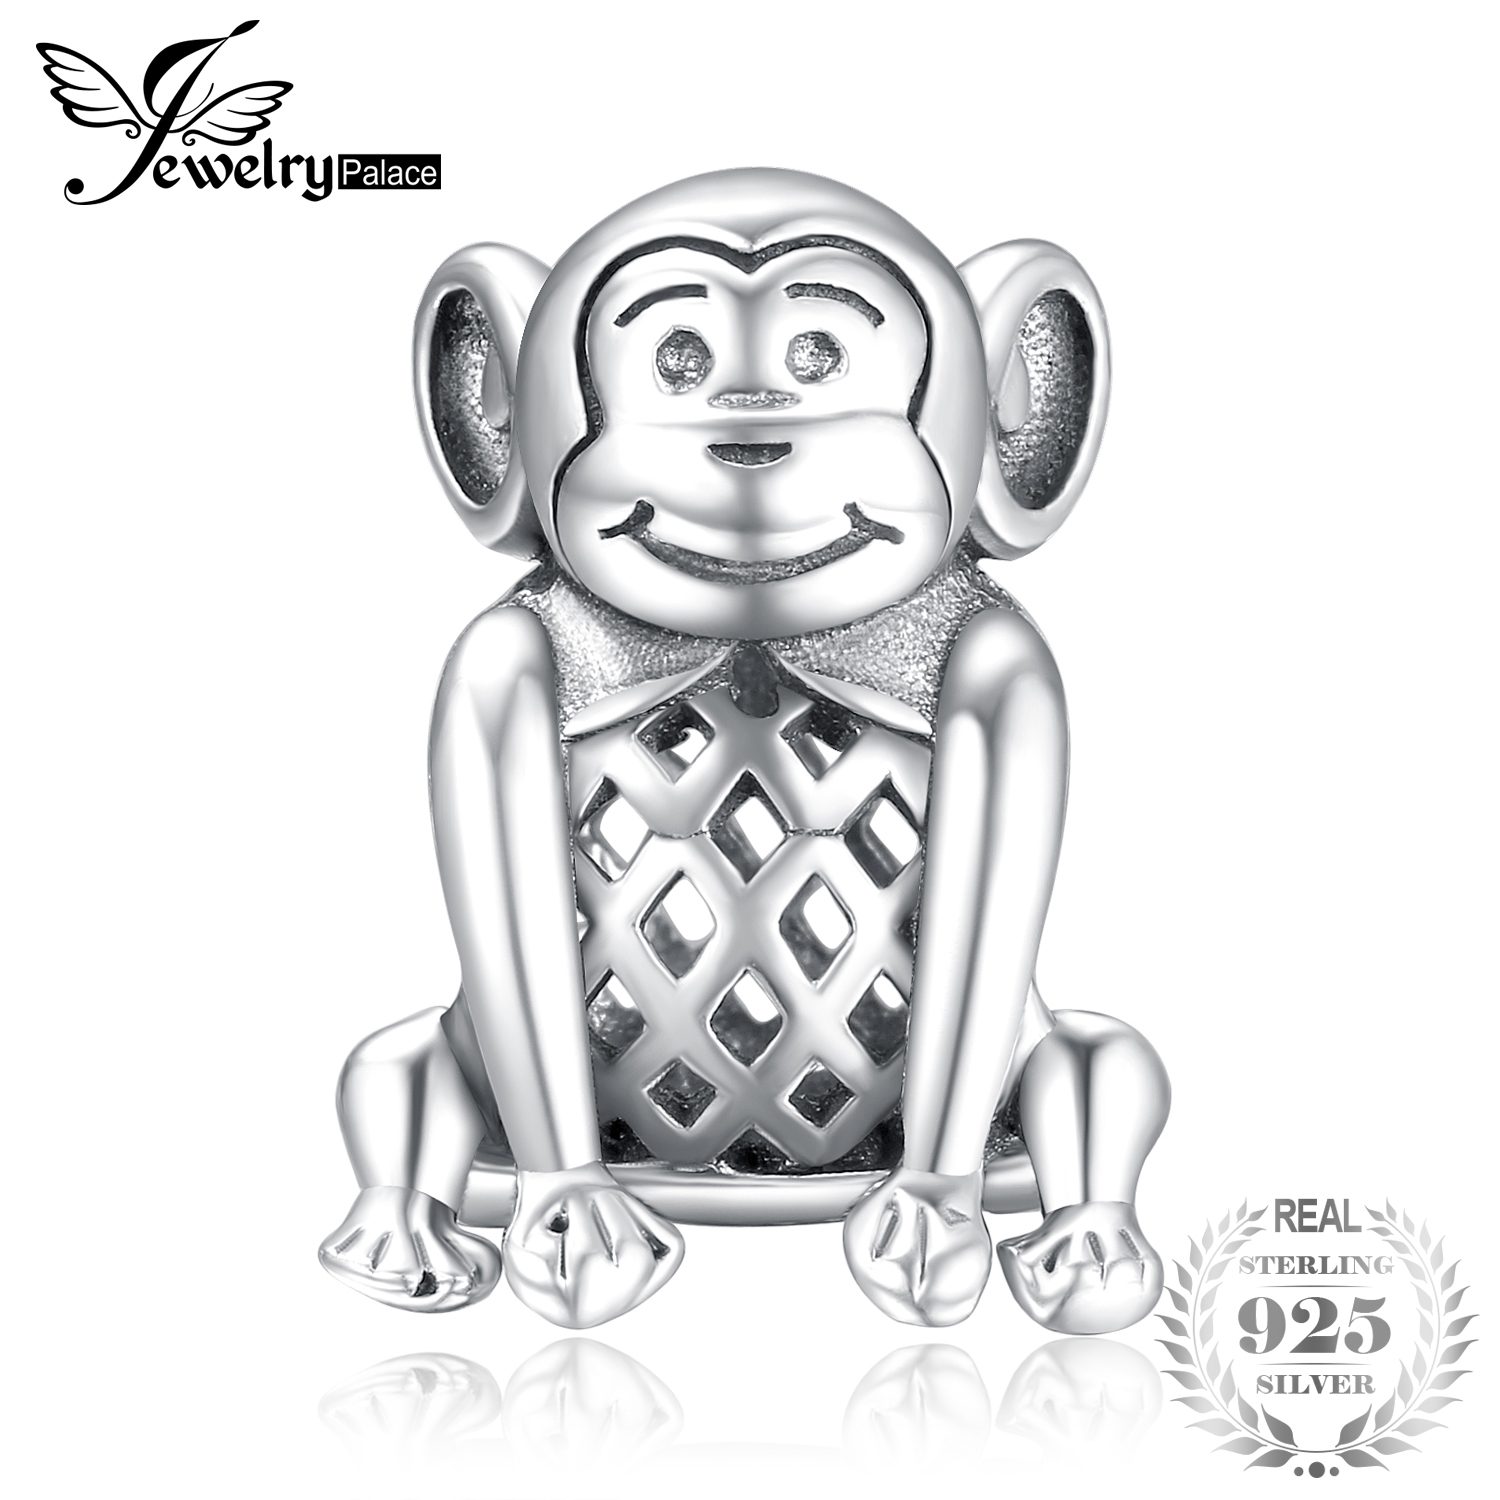 Beads Frugal Jewelrypalace 925 Sterling Silver Magic Monkey Bead Charm Fit Bracelets Fashion Diy Bead Charm For Women Bracelets Last Style